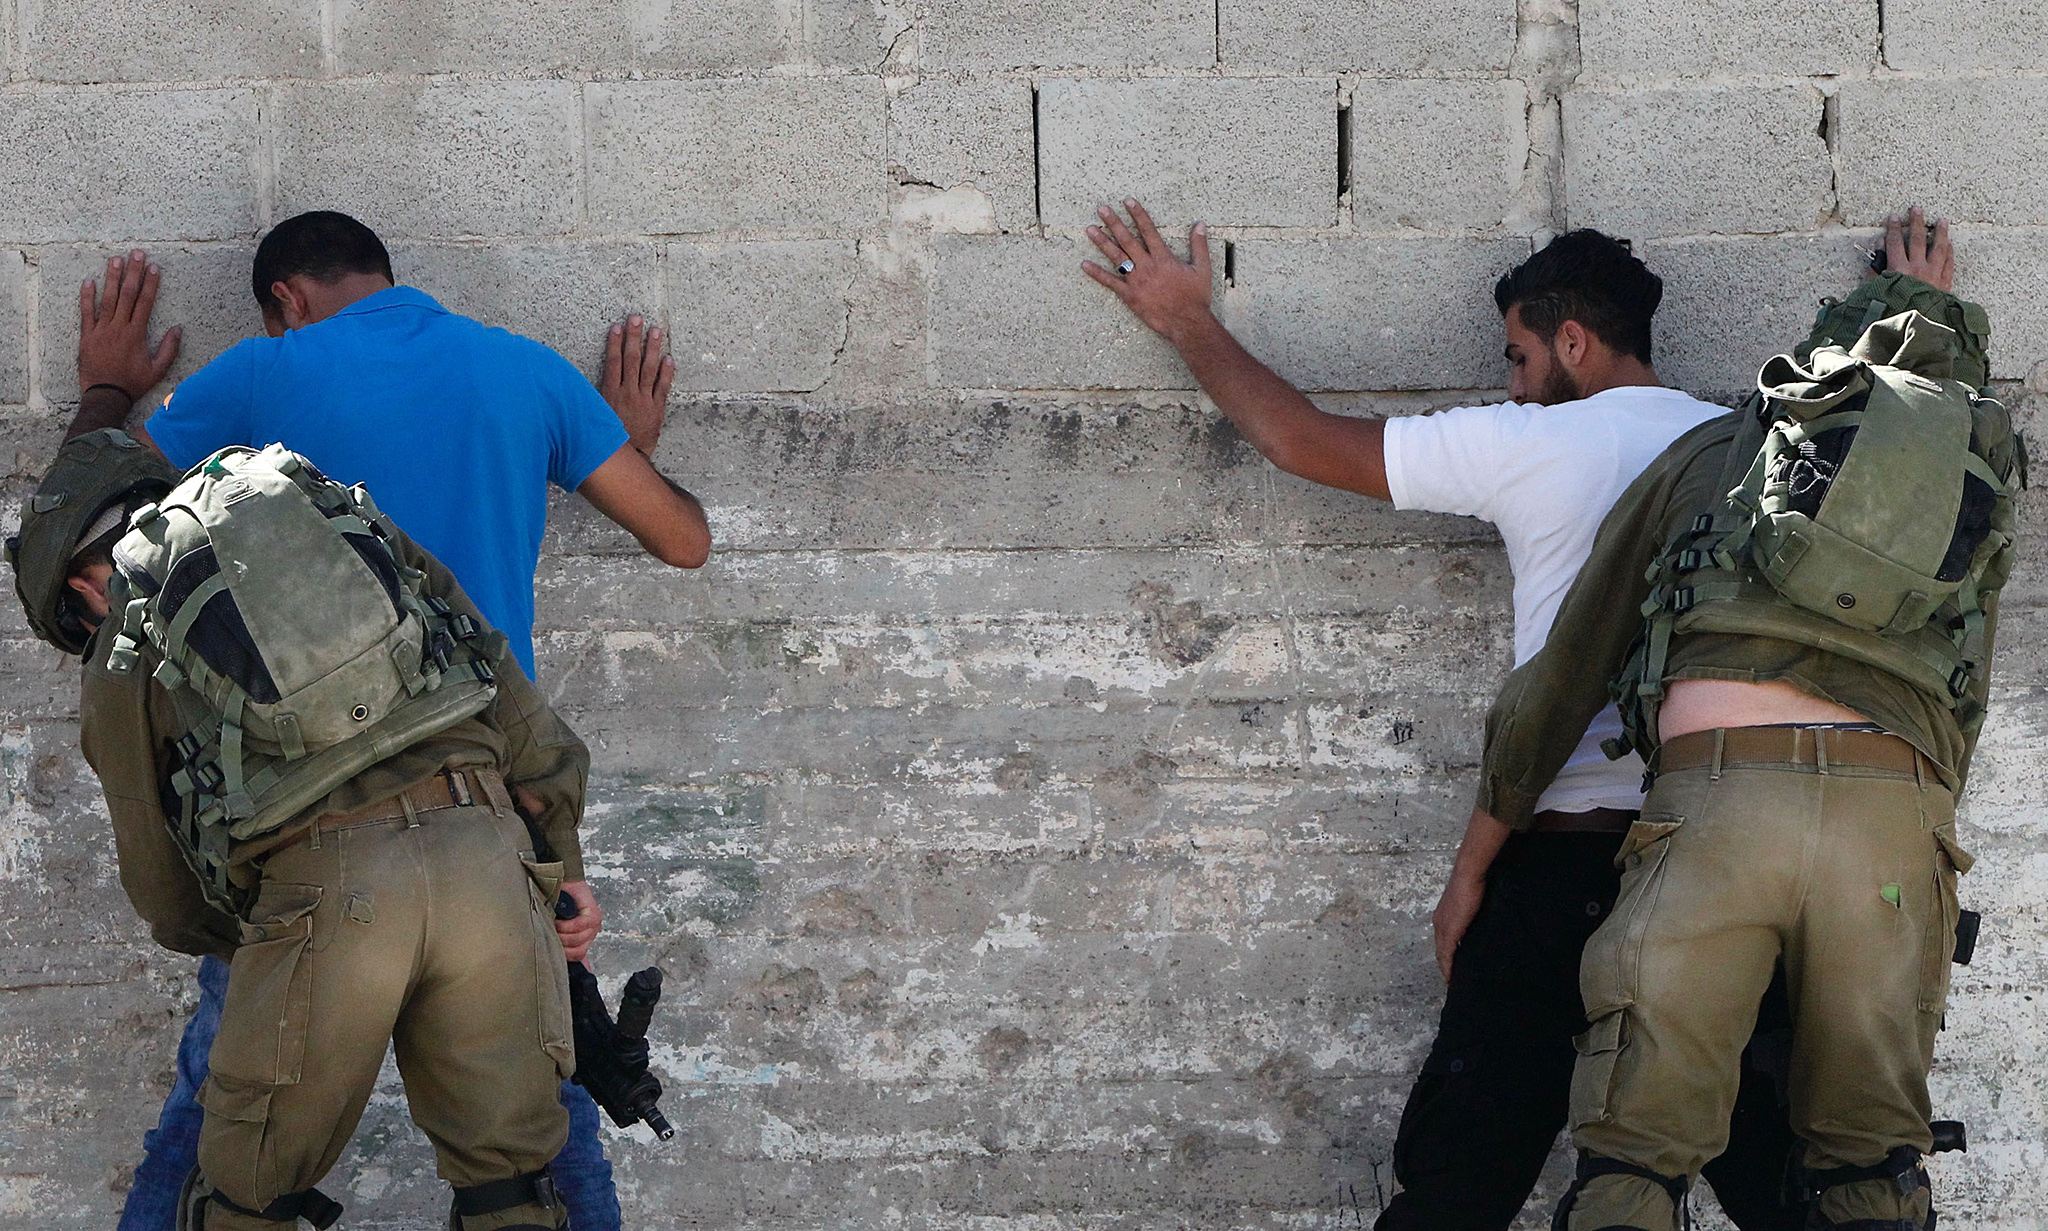 Israeli security forces body search Palestinians in the West Bank town of Hebron on September 20, 2016, after a Palestinian tried to stab Israeli soldiers before being shot to death at a checkpoint at the entrance of the nearby village of Bani Naim.  This incident was the ninth since September 16, 2016, coming after Palestinians wrapped up the Muslim celebration of Eid al-Adha and as Israel tightened security ahead of major Jewish holidays in October.   / AFP PHOTO / HAZEM BADERHAZEM BADER/AFP/Getty Images